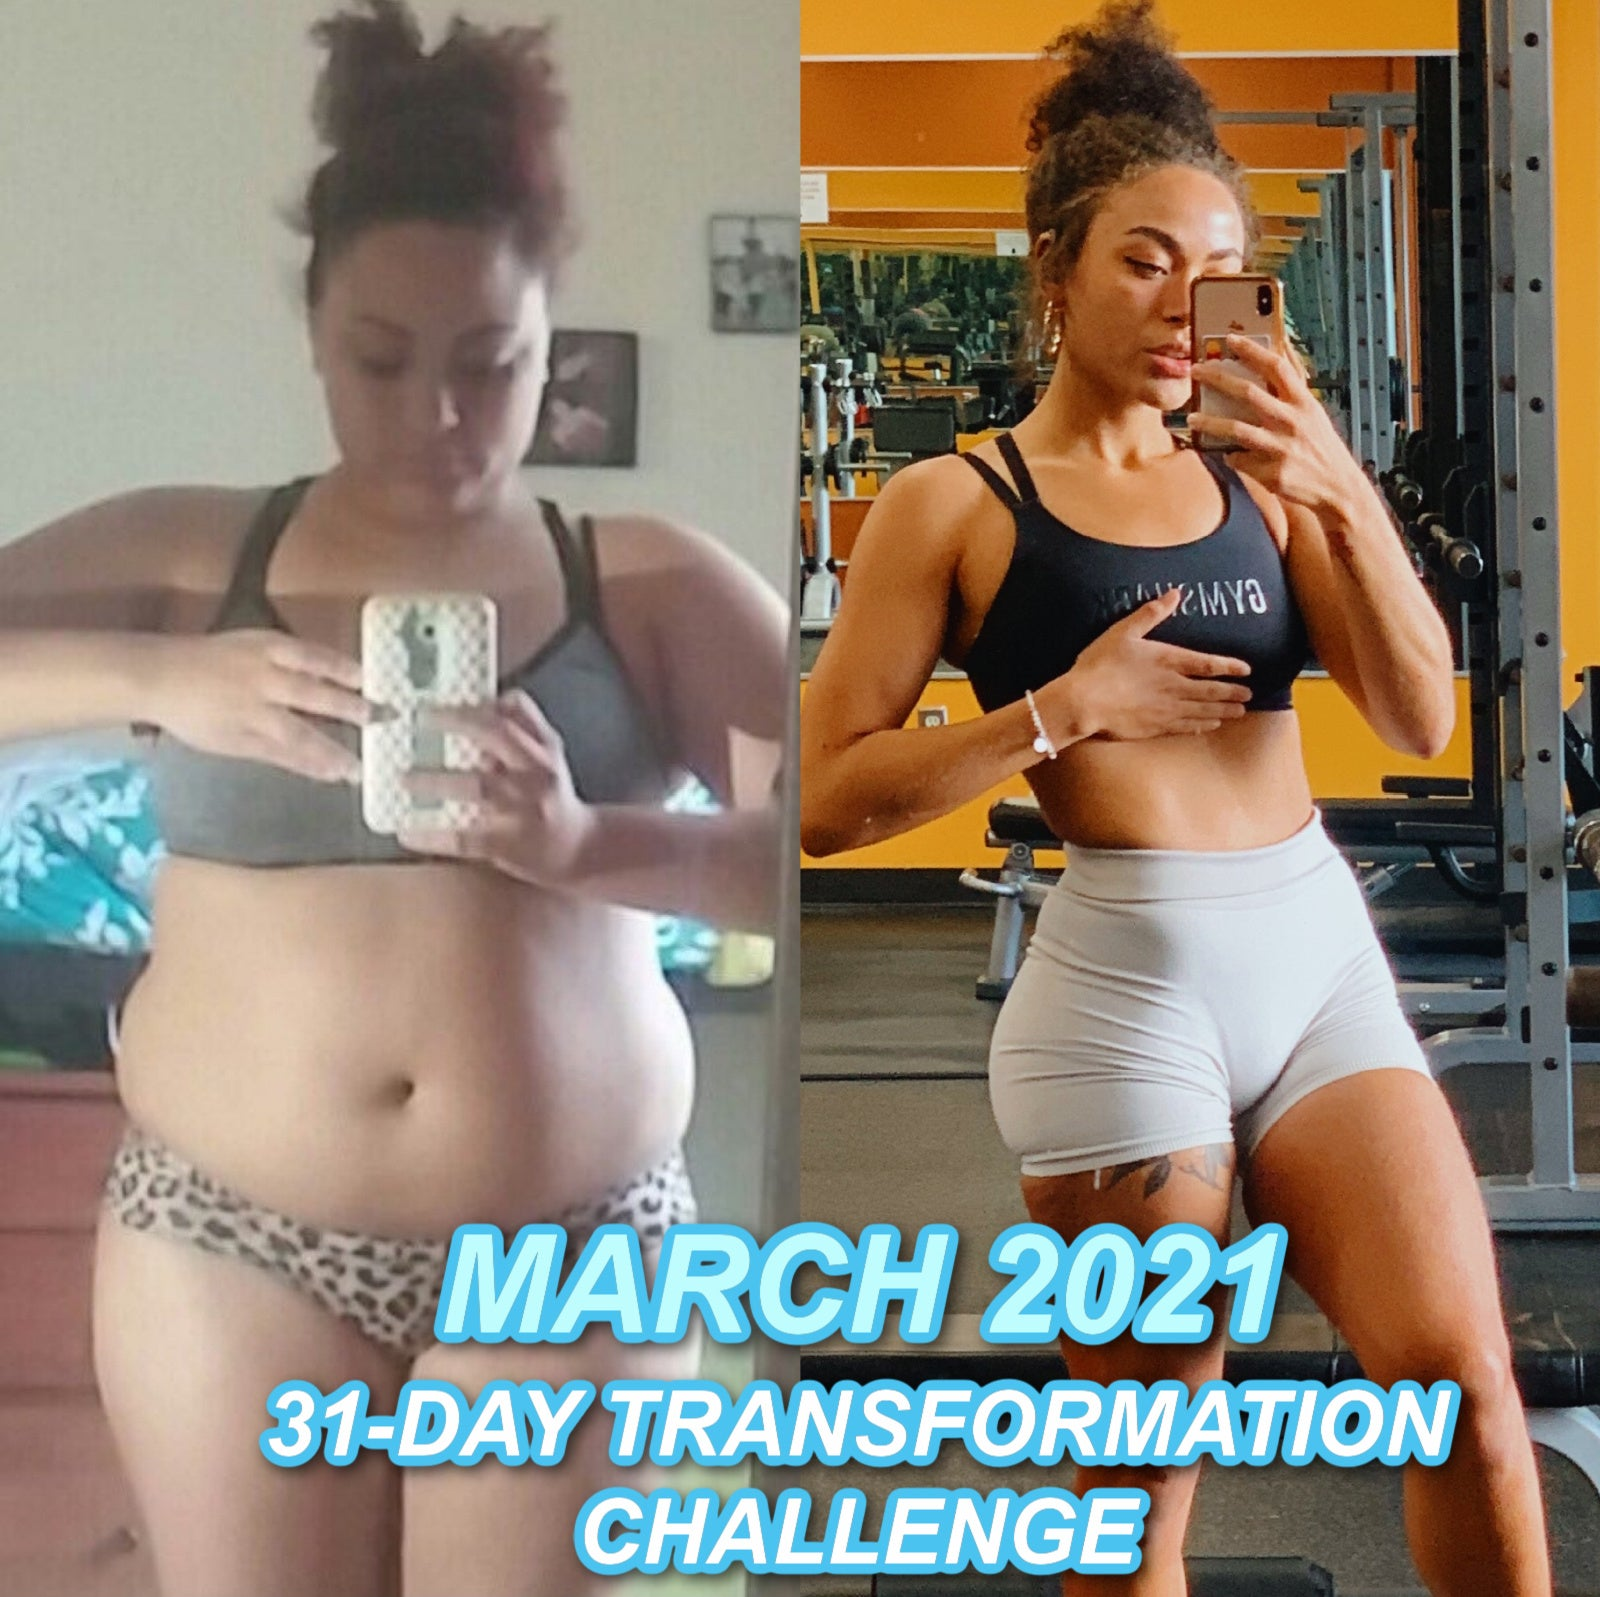 MAKE IT HAPPEN: 31 Day Transformation Challenge (March 2021)